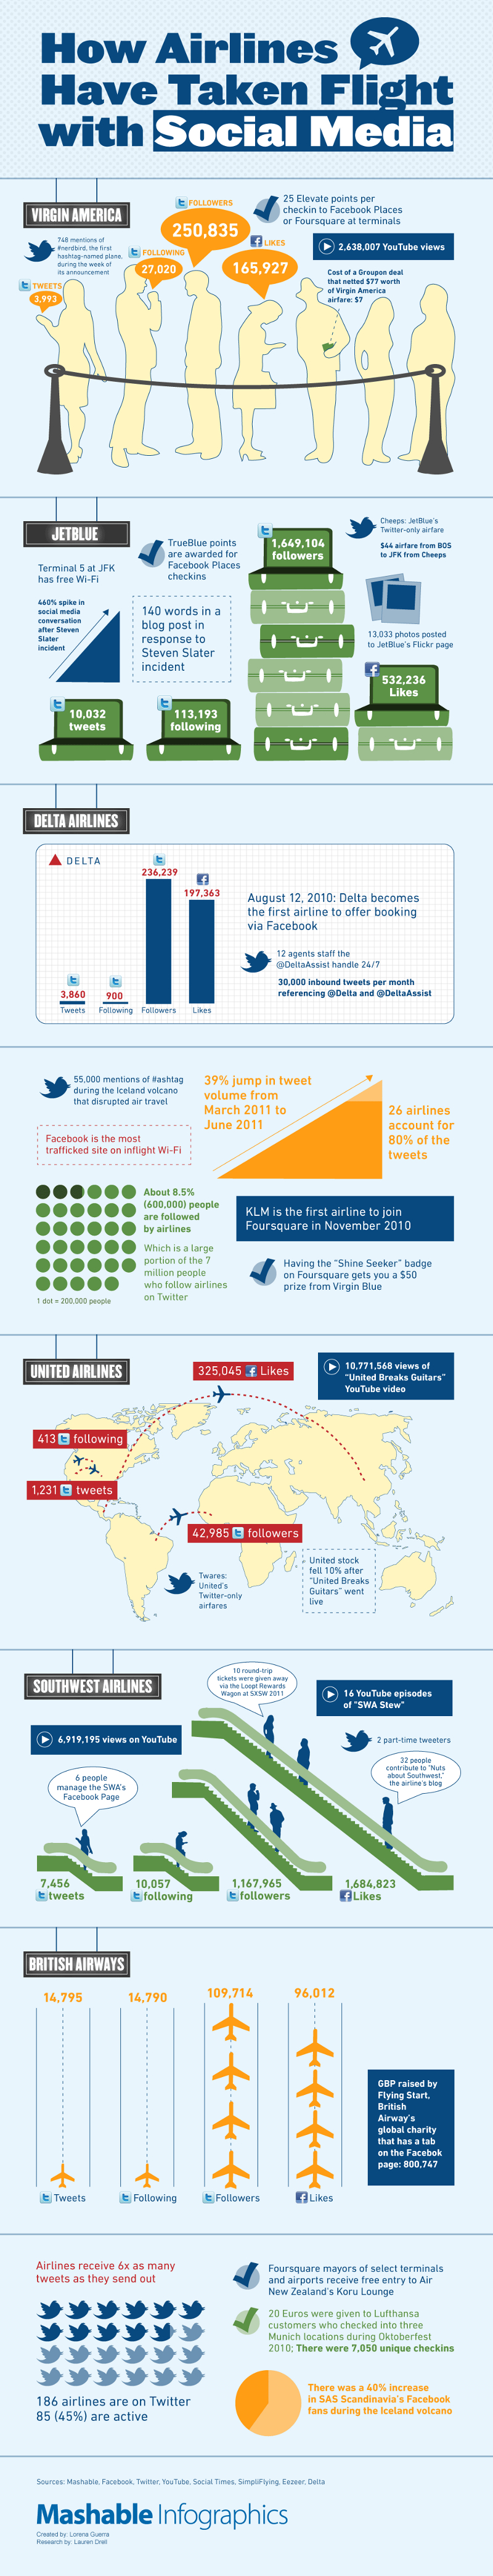 Airline Marketing with Social Media